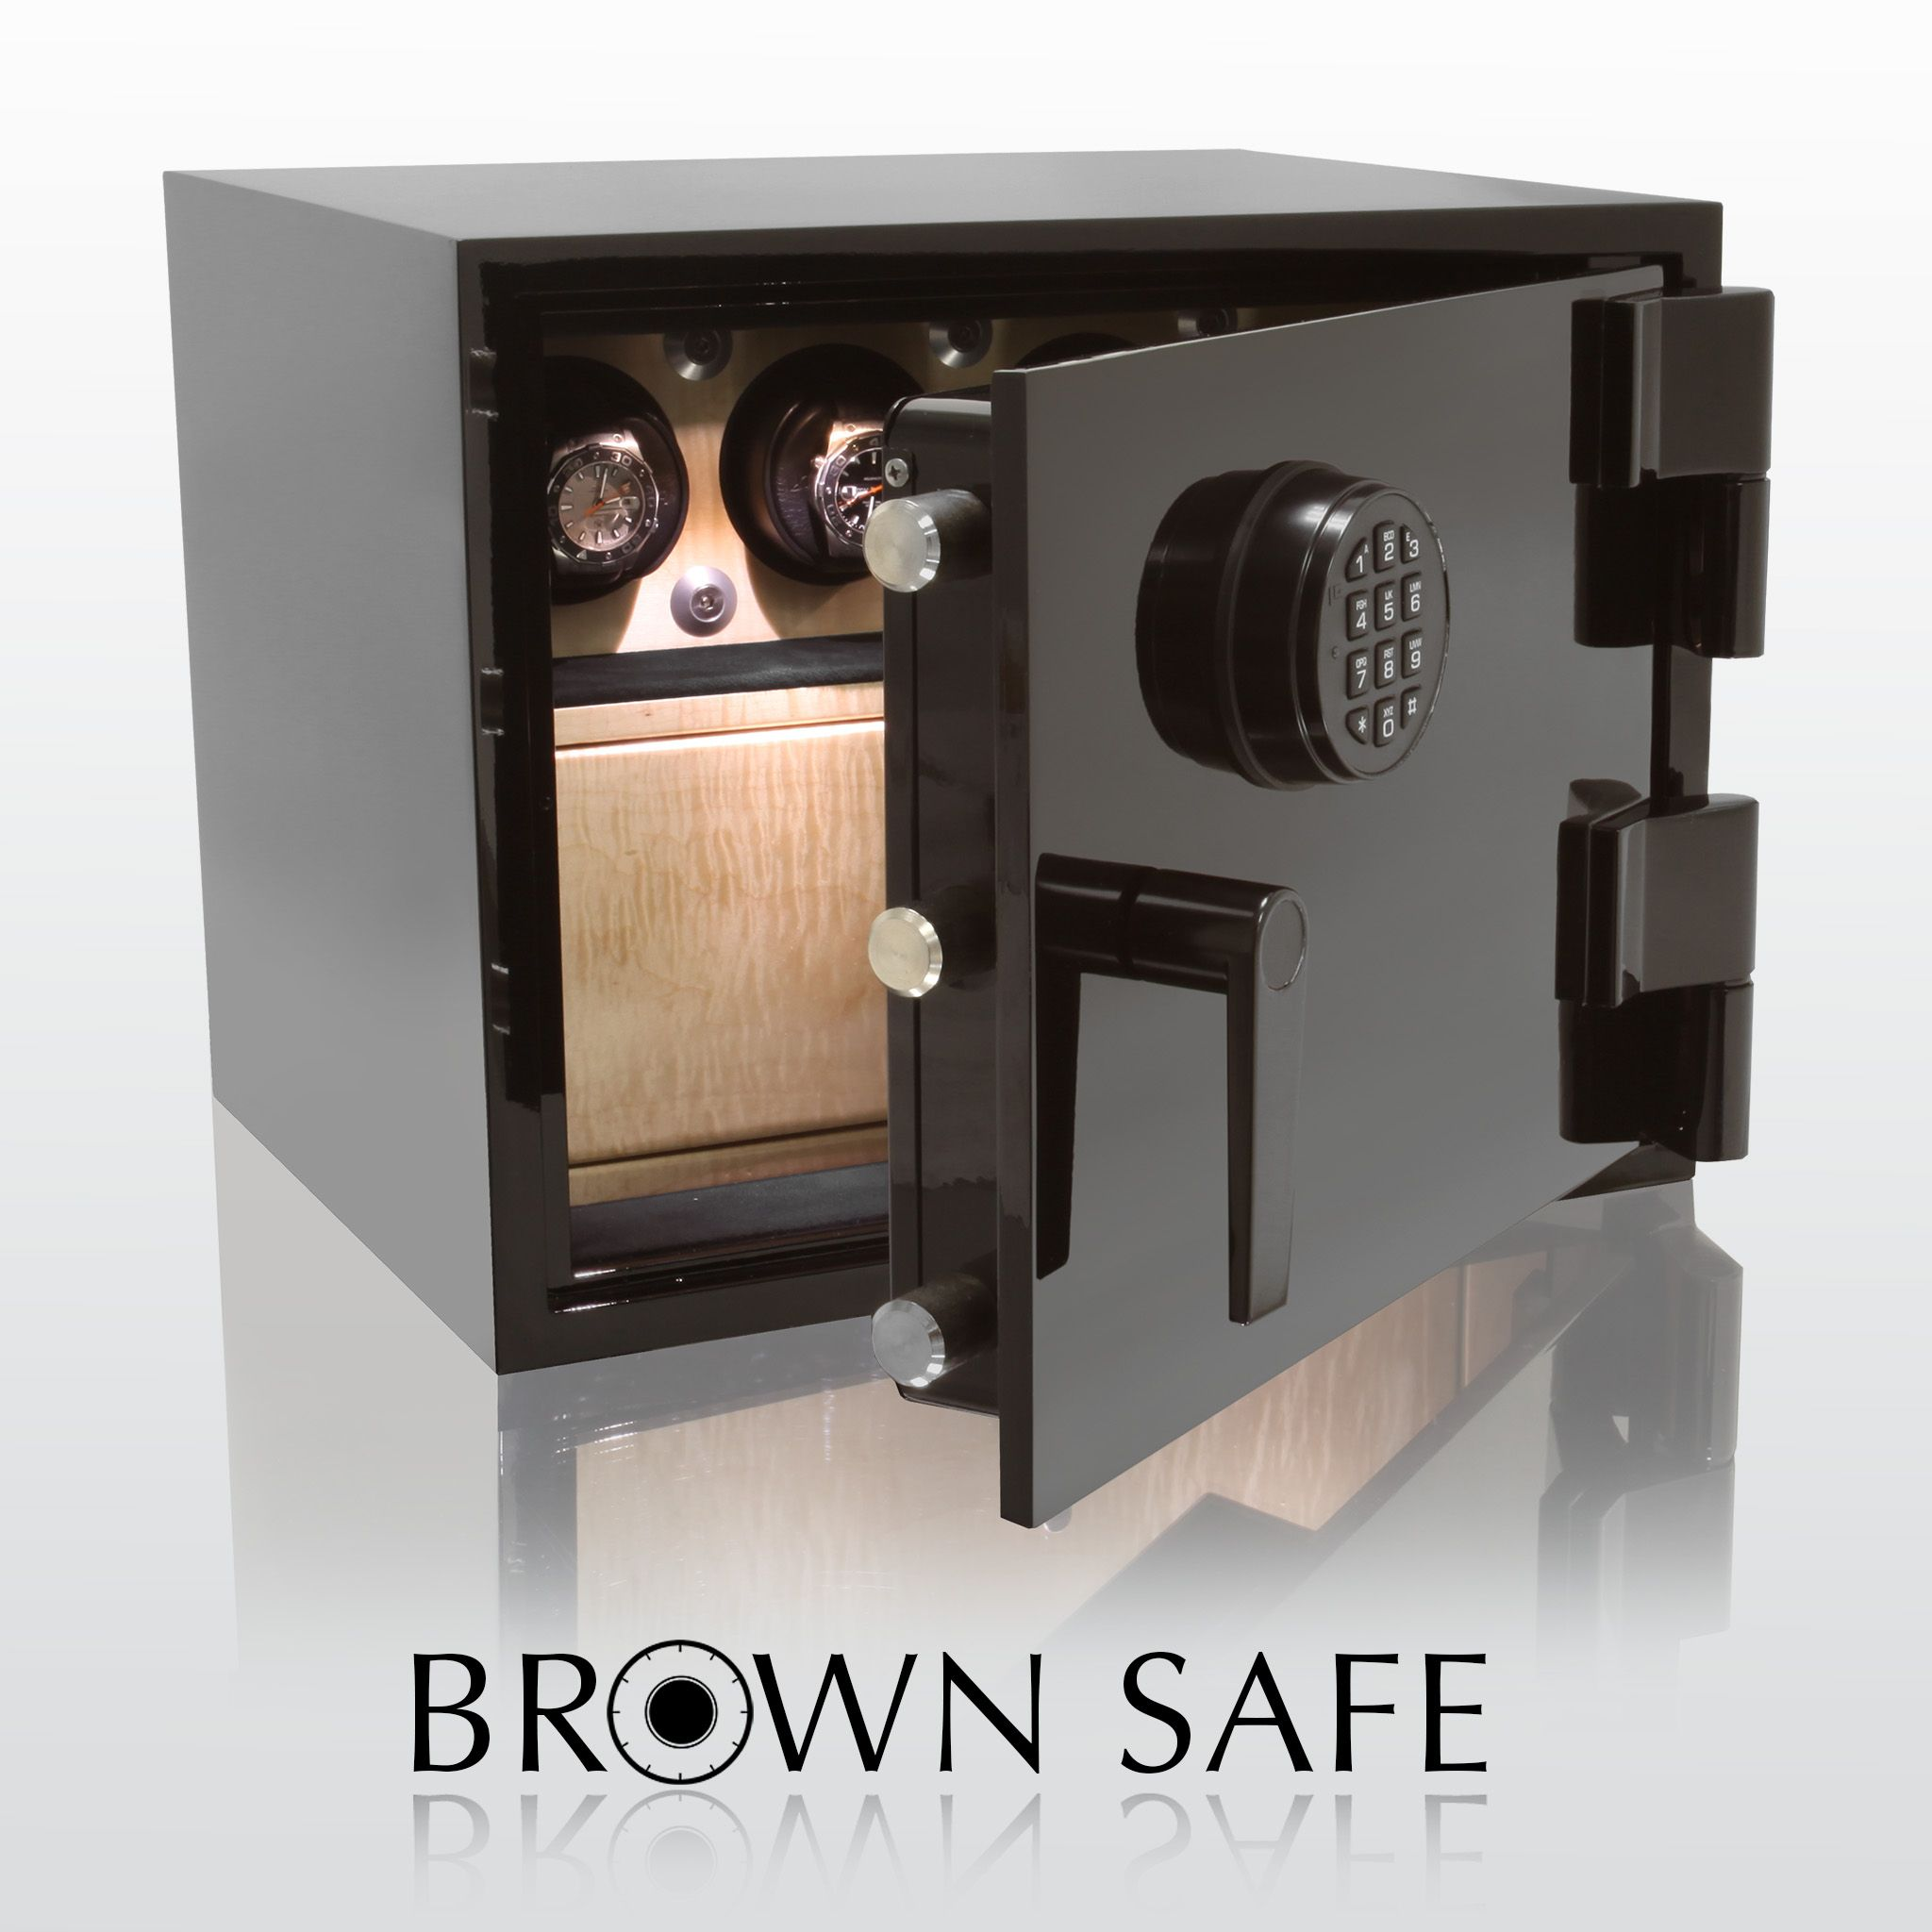 The mini gem personal safe is the readymade solution to securely